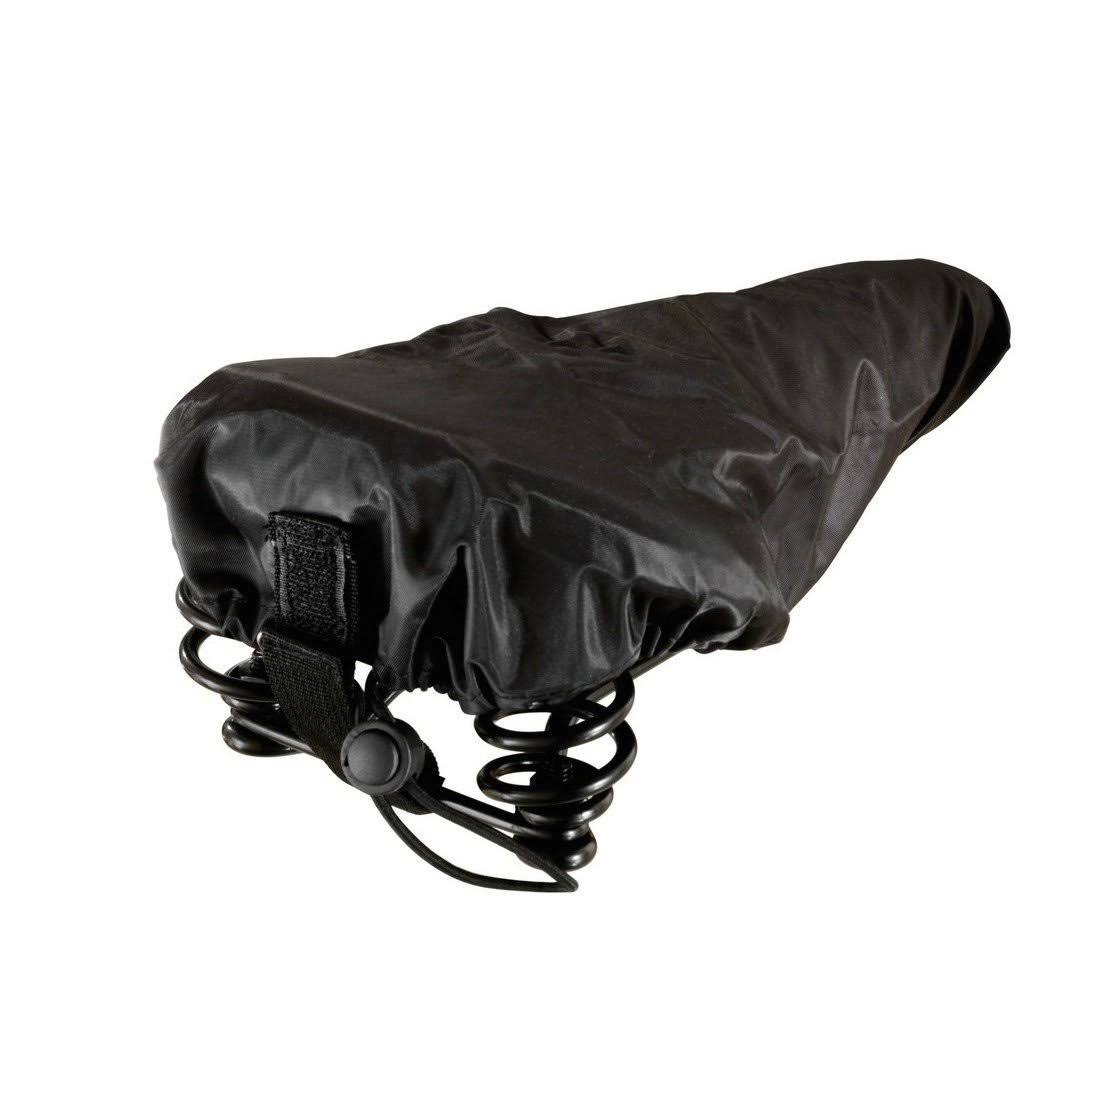 Brooks Saddle Cover - Black, Medium